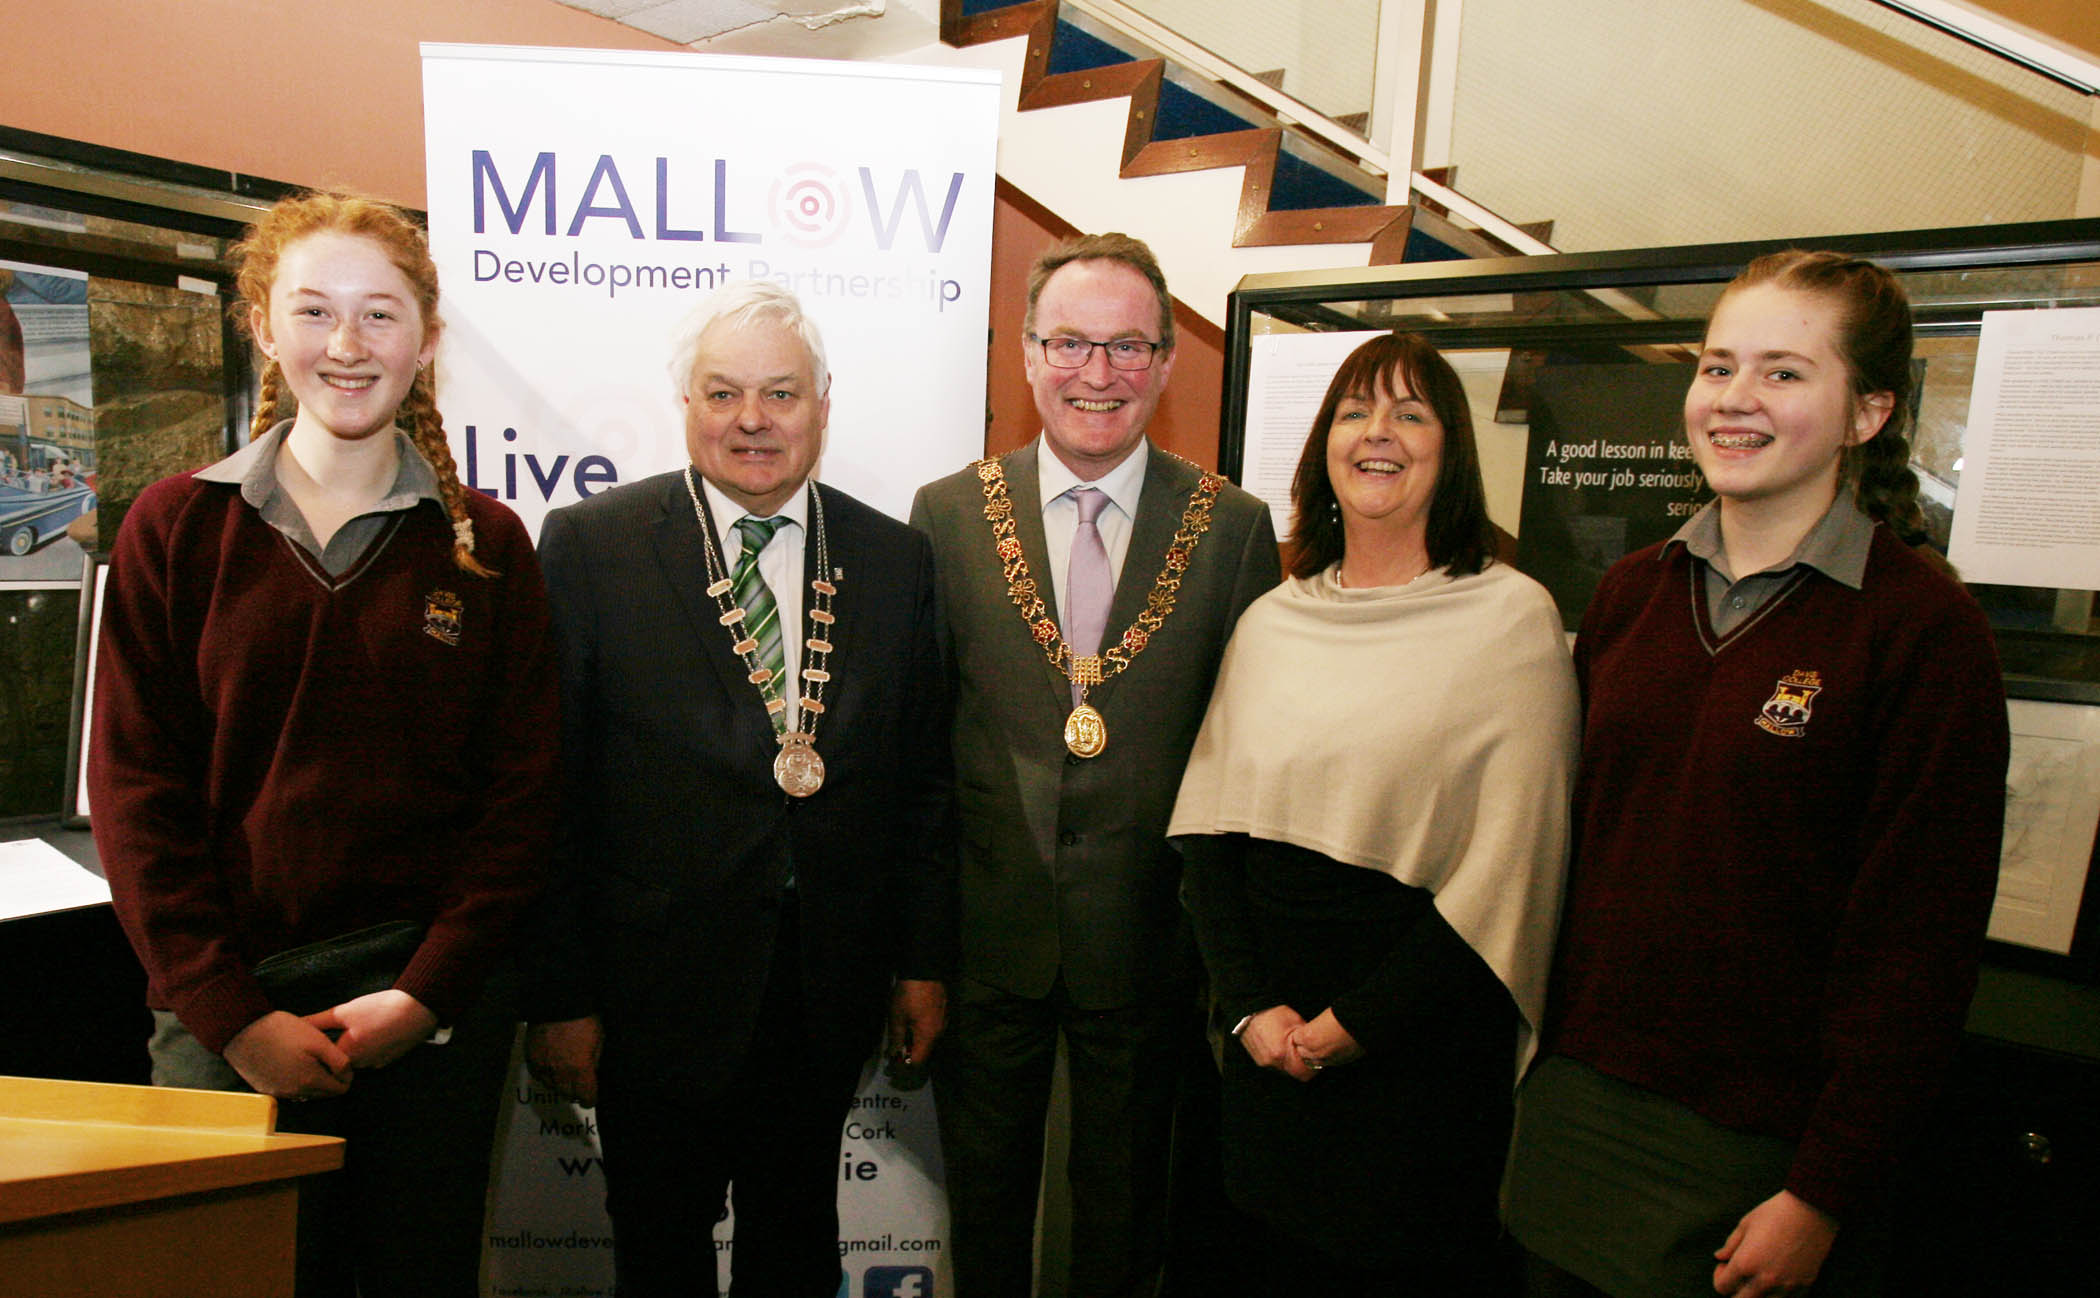 06 Deputy & Lord Mayors Frank O'Flynn & Des Cahill with Carmel Staunton of Davis College and student